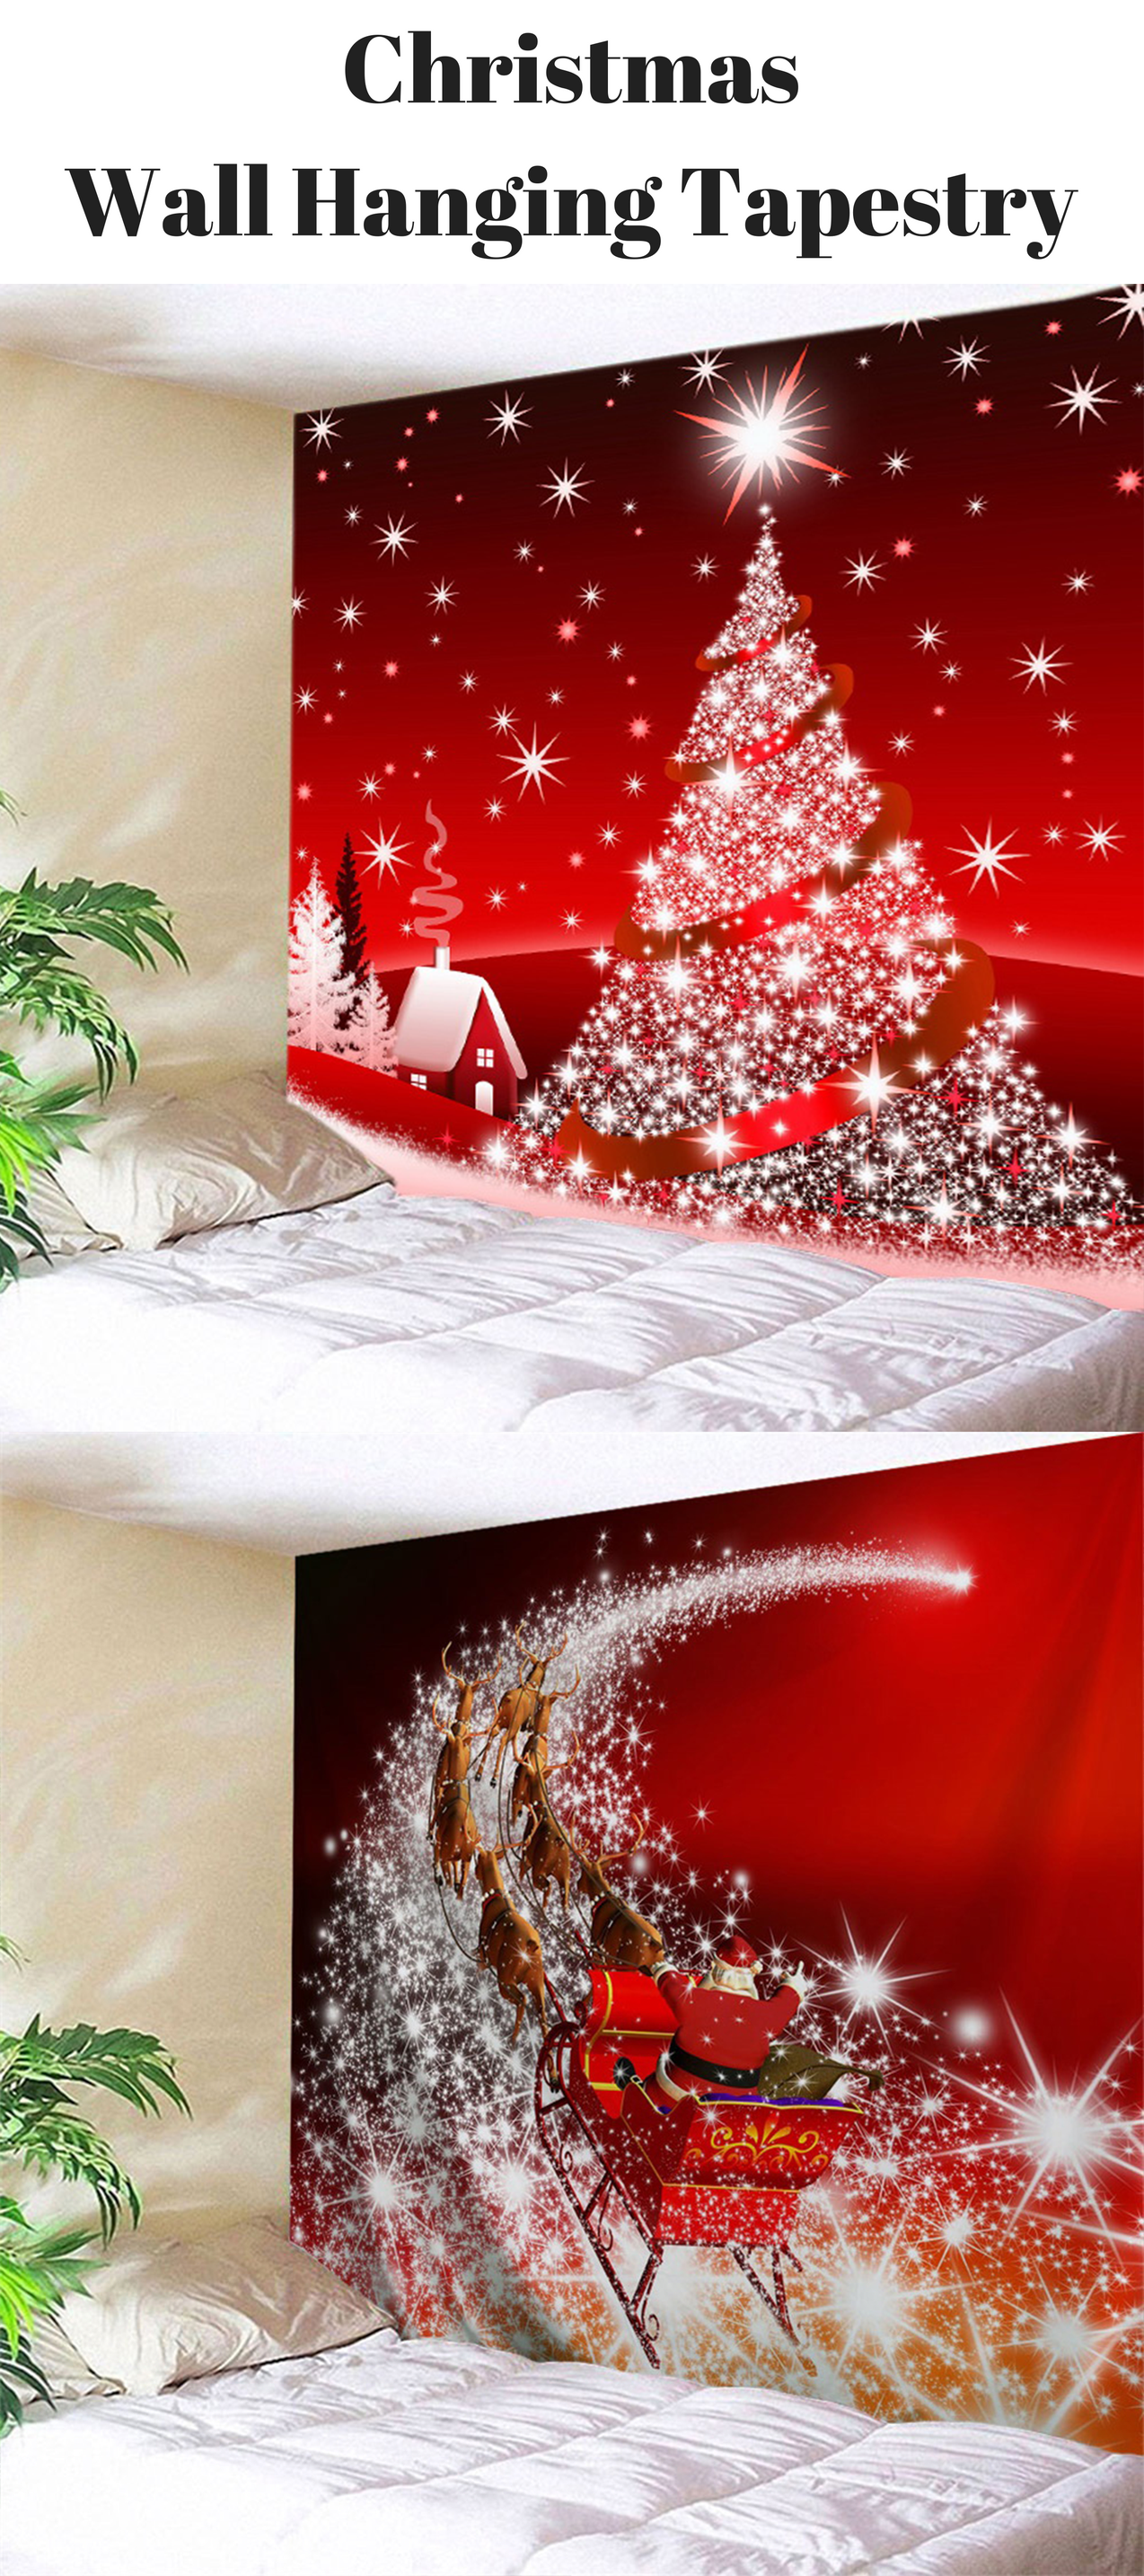 Christmas Wall Hanging Tapestry From 11 Free Shipping